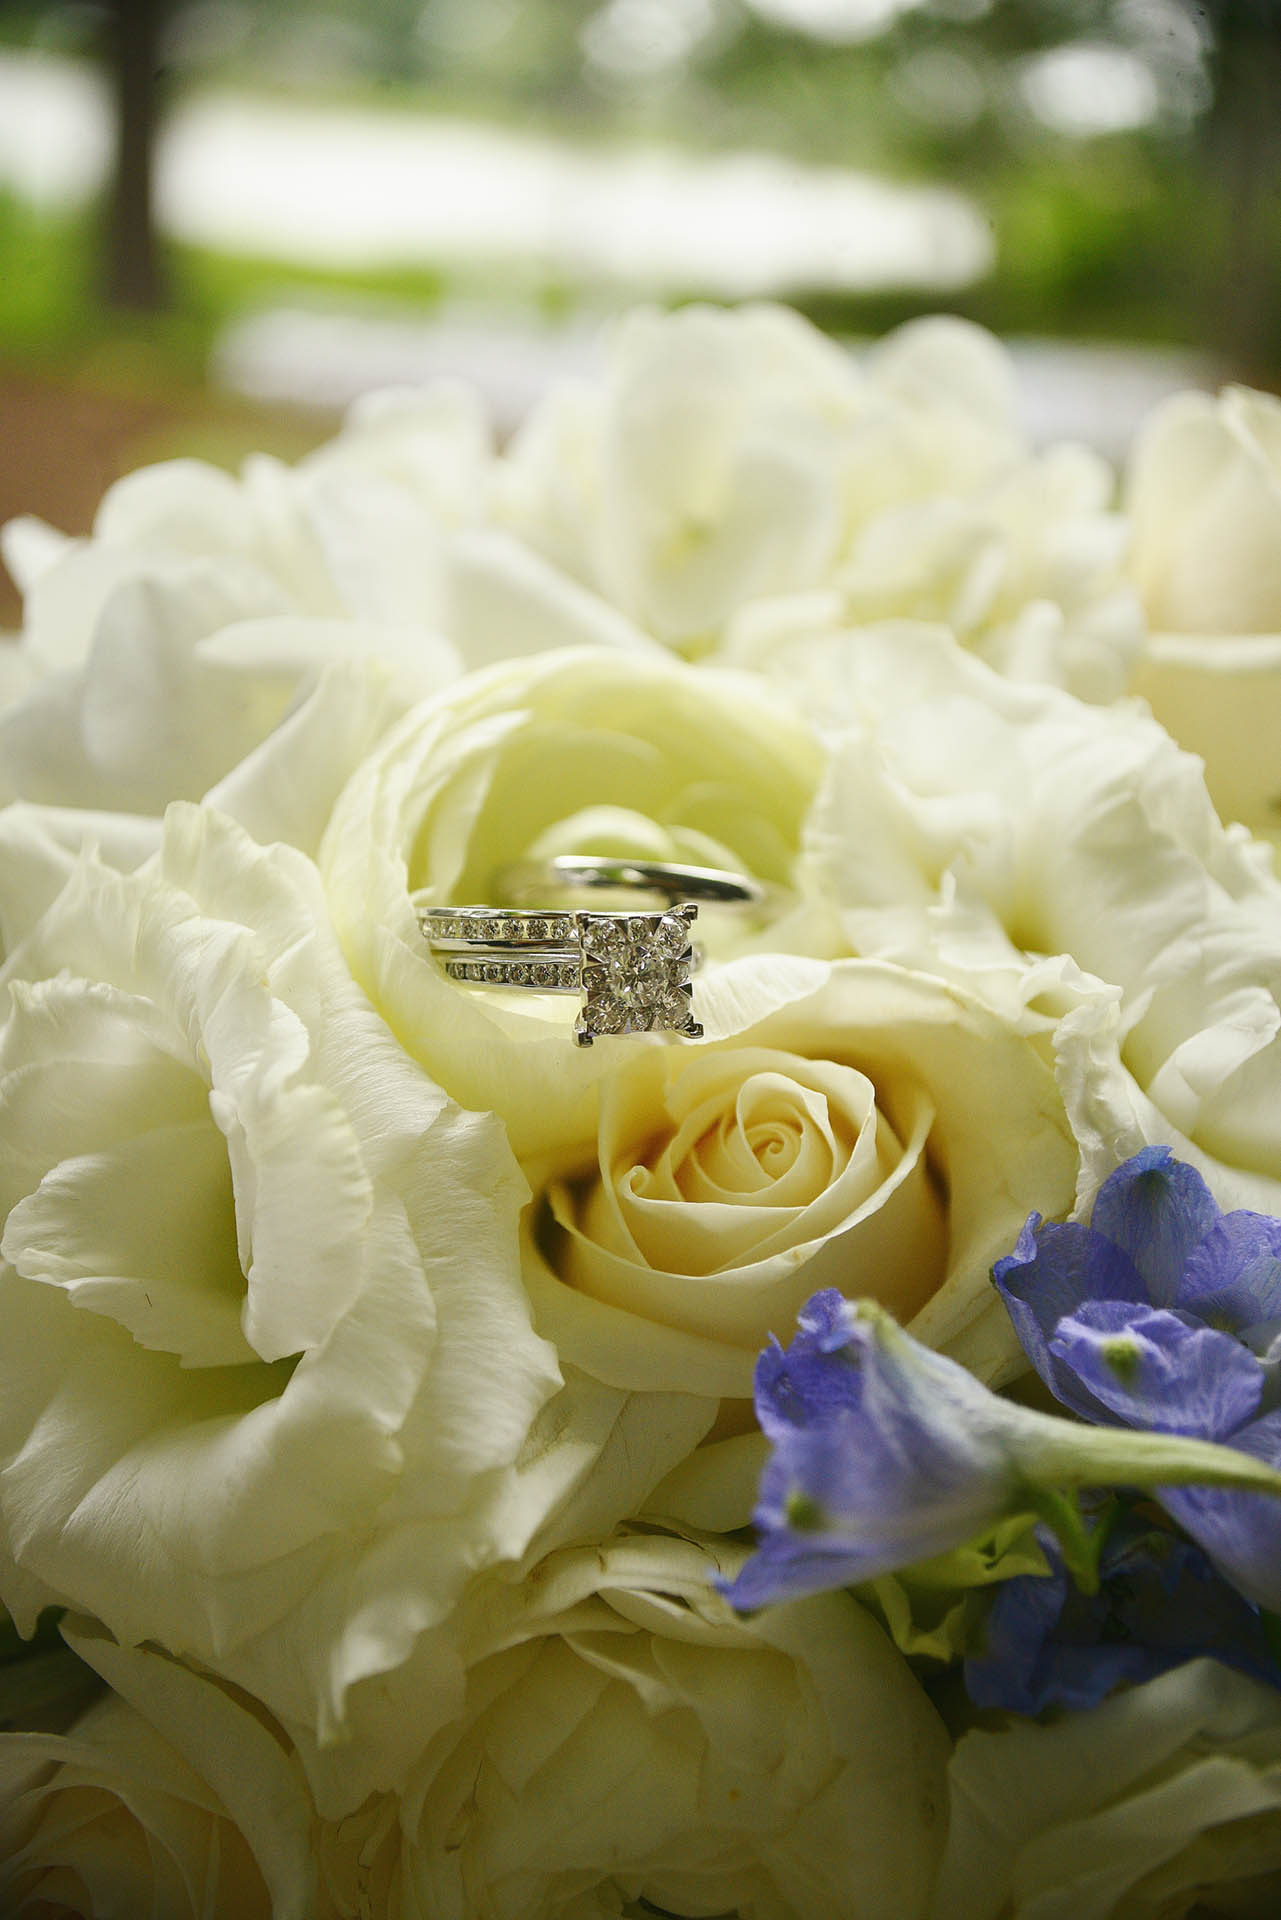 Flowers and the ring